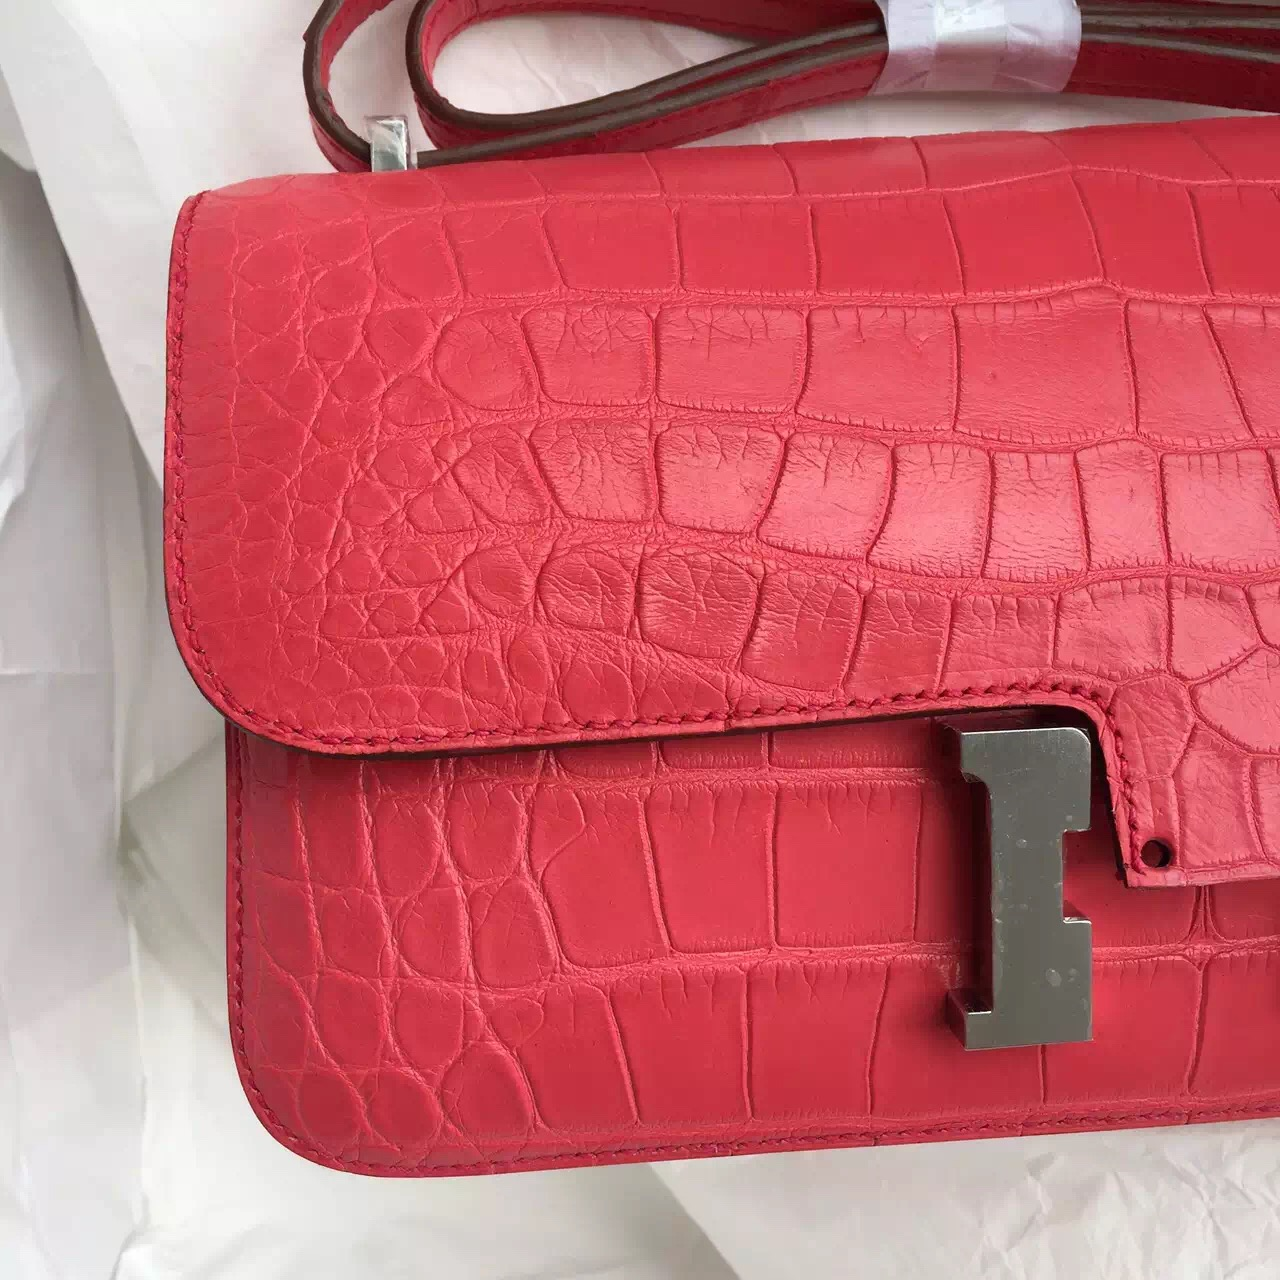 T5 Rose Jaipure Crocodile Skin Hermes Constance Elan 26CM Luxury Women's Bag